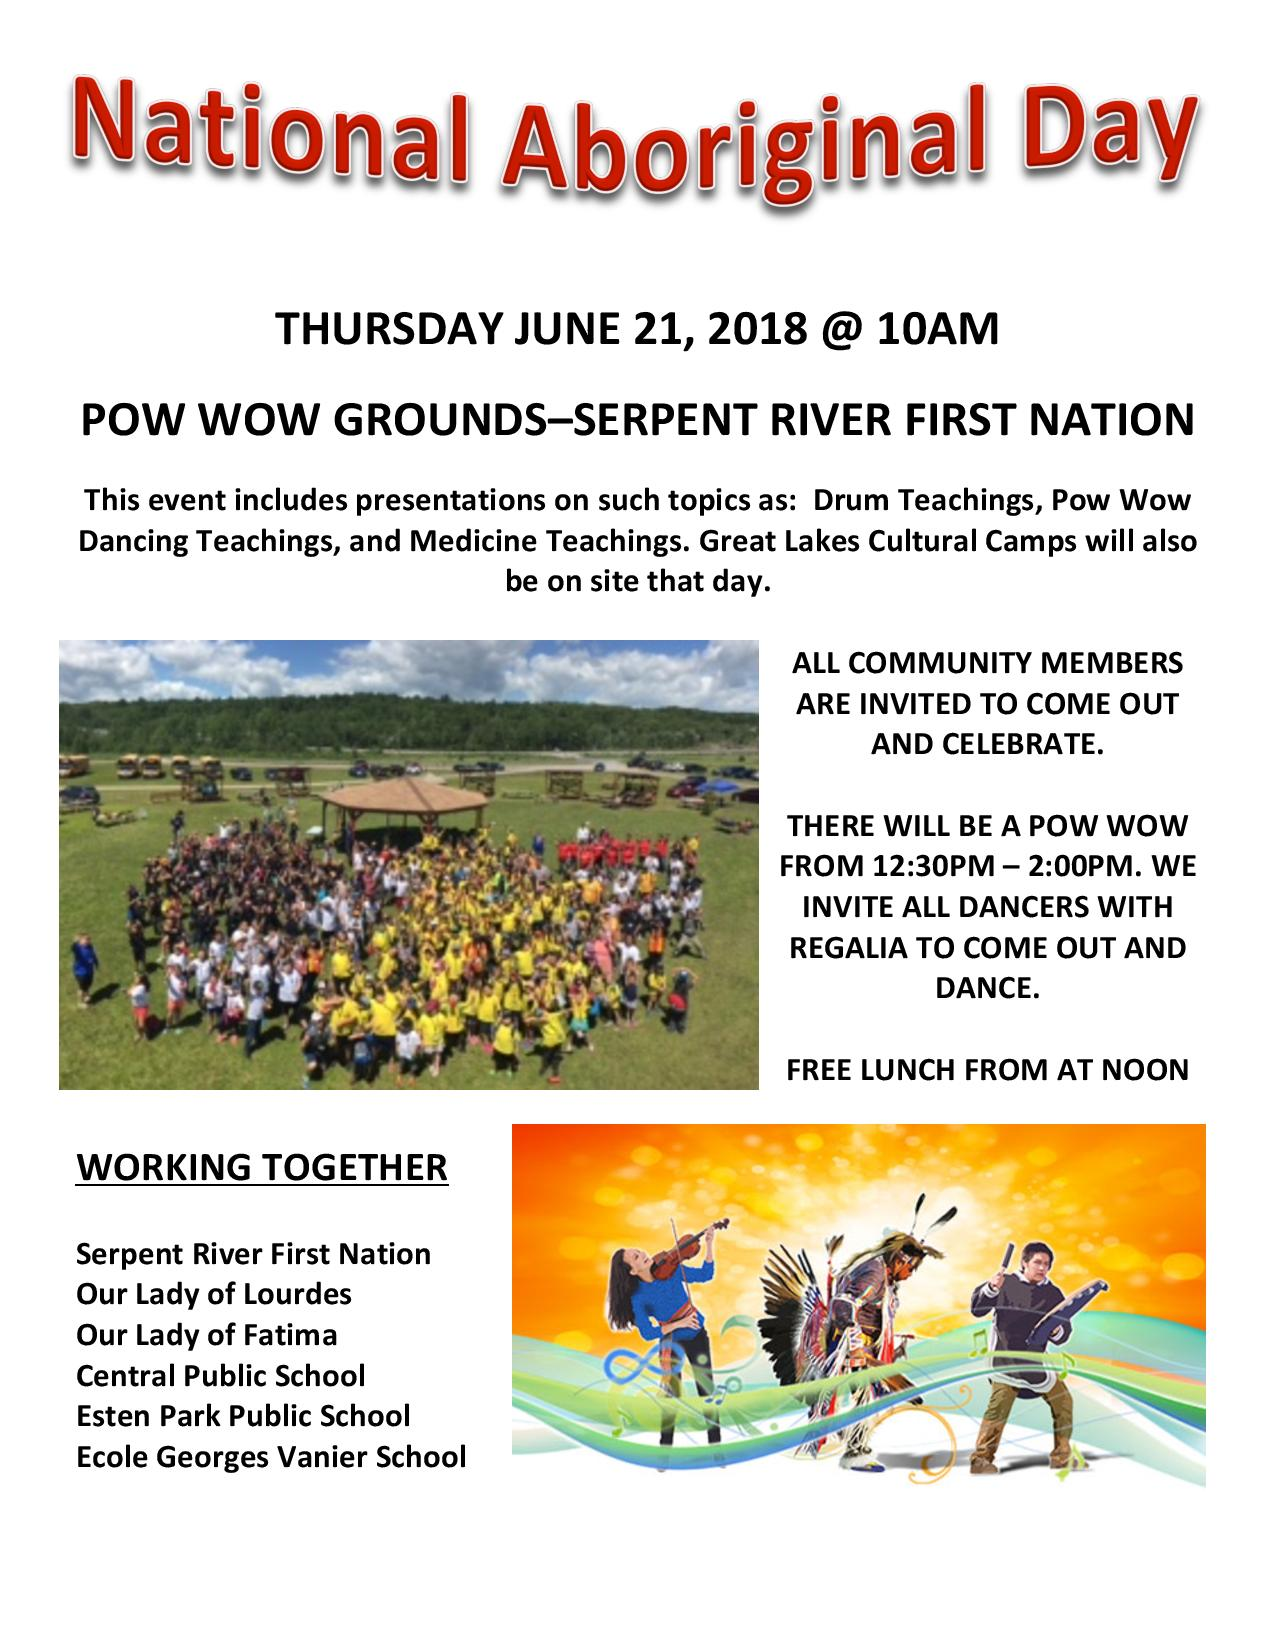 2018-06-21 Aborignal Day Poster-page-001.jpg